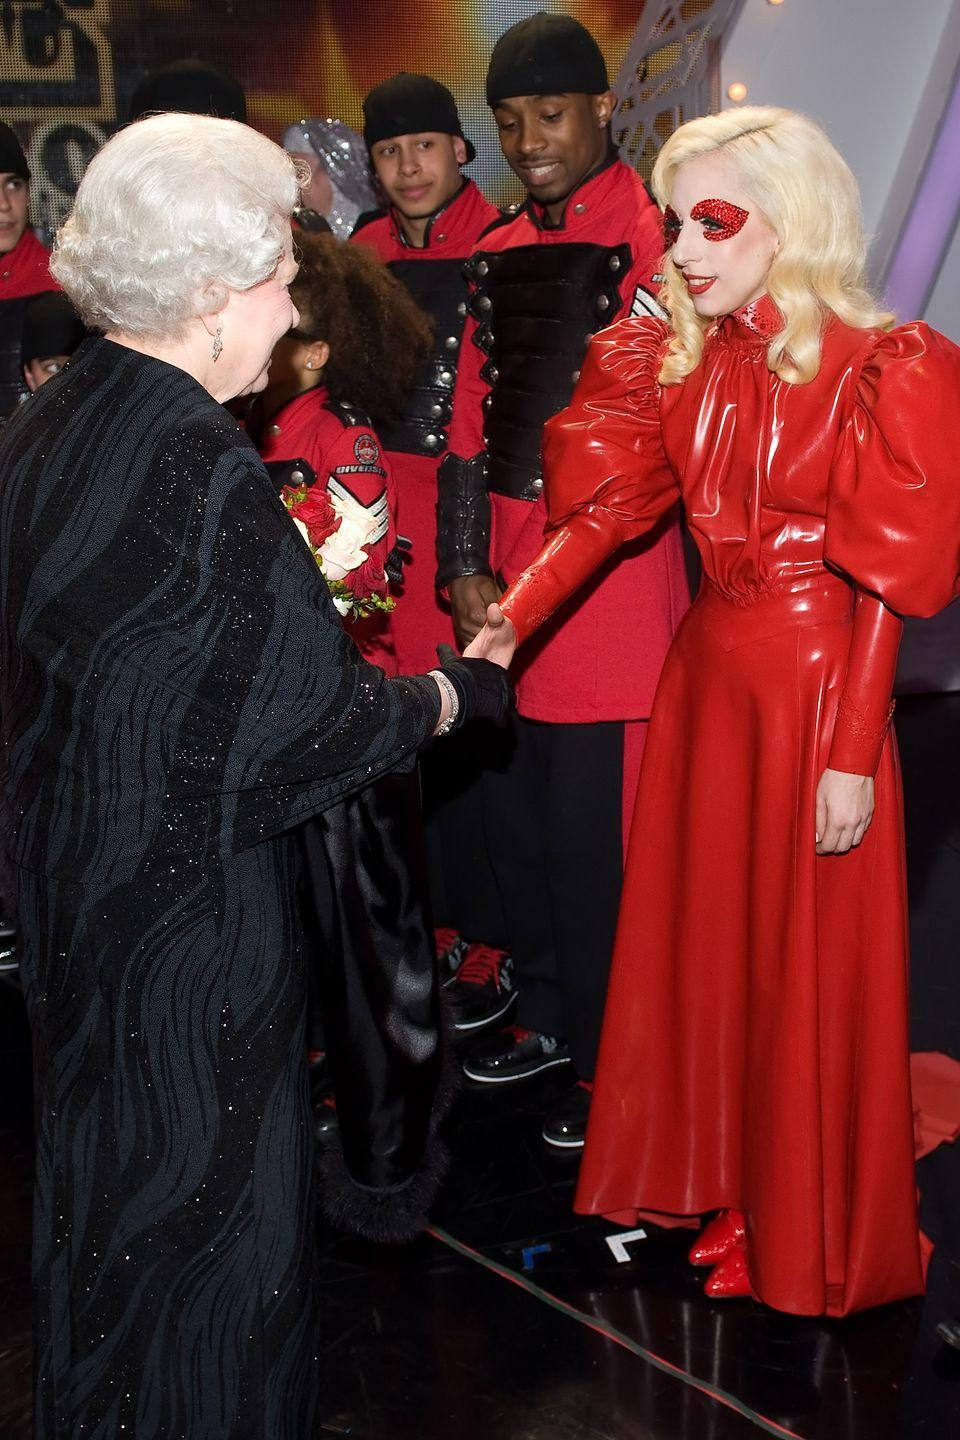 <p>Lady Gaga had the chance to meet the Queen of England after her performance at the Royal Variety Performance in Blackpool, England.</p>